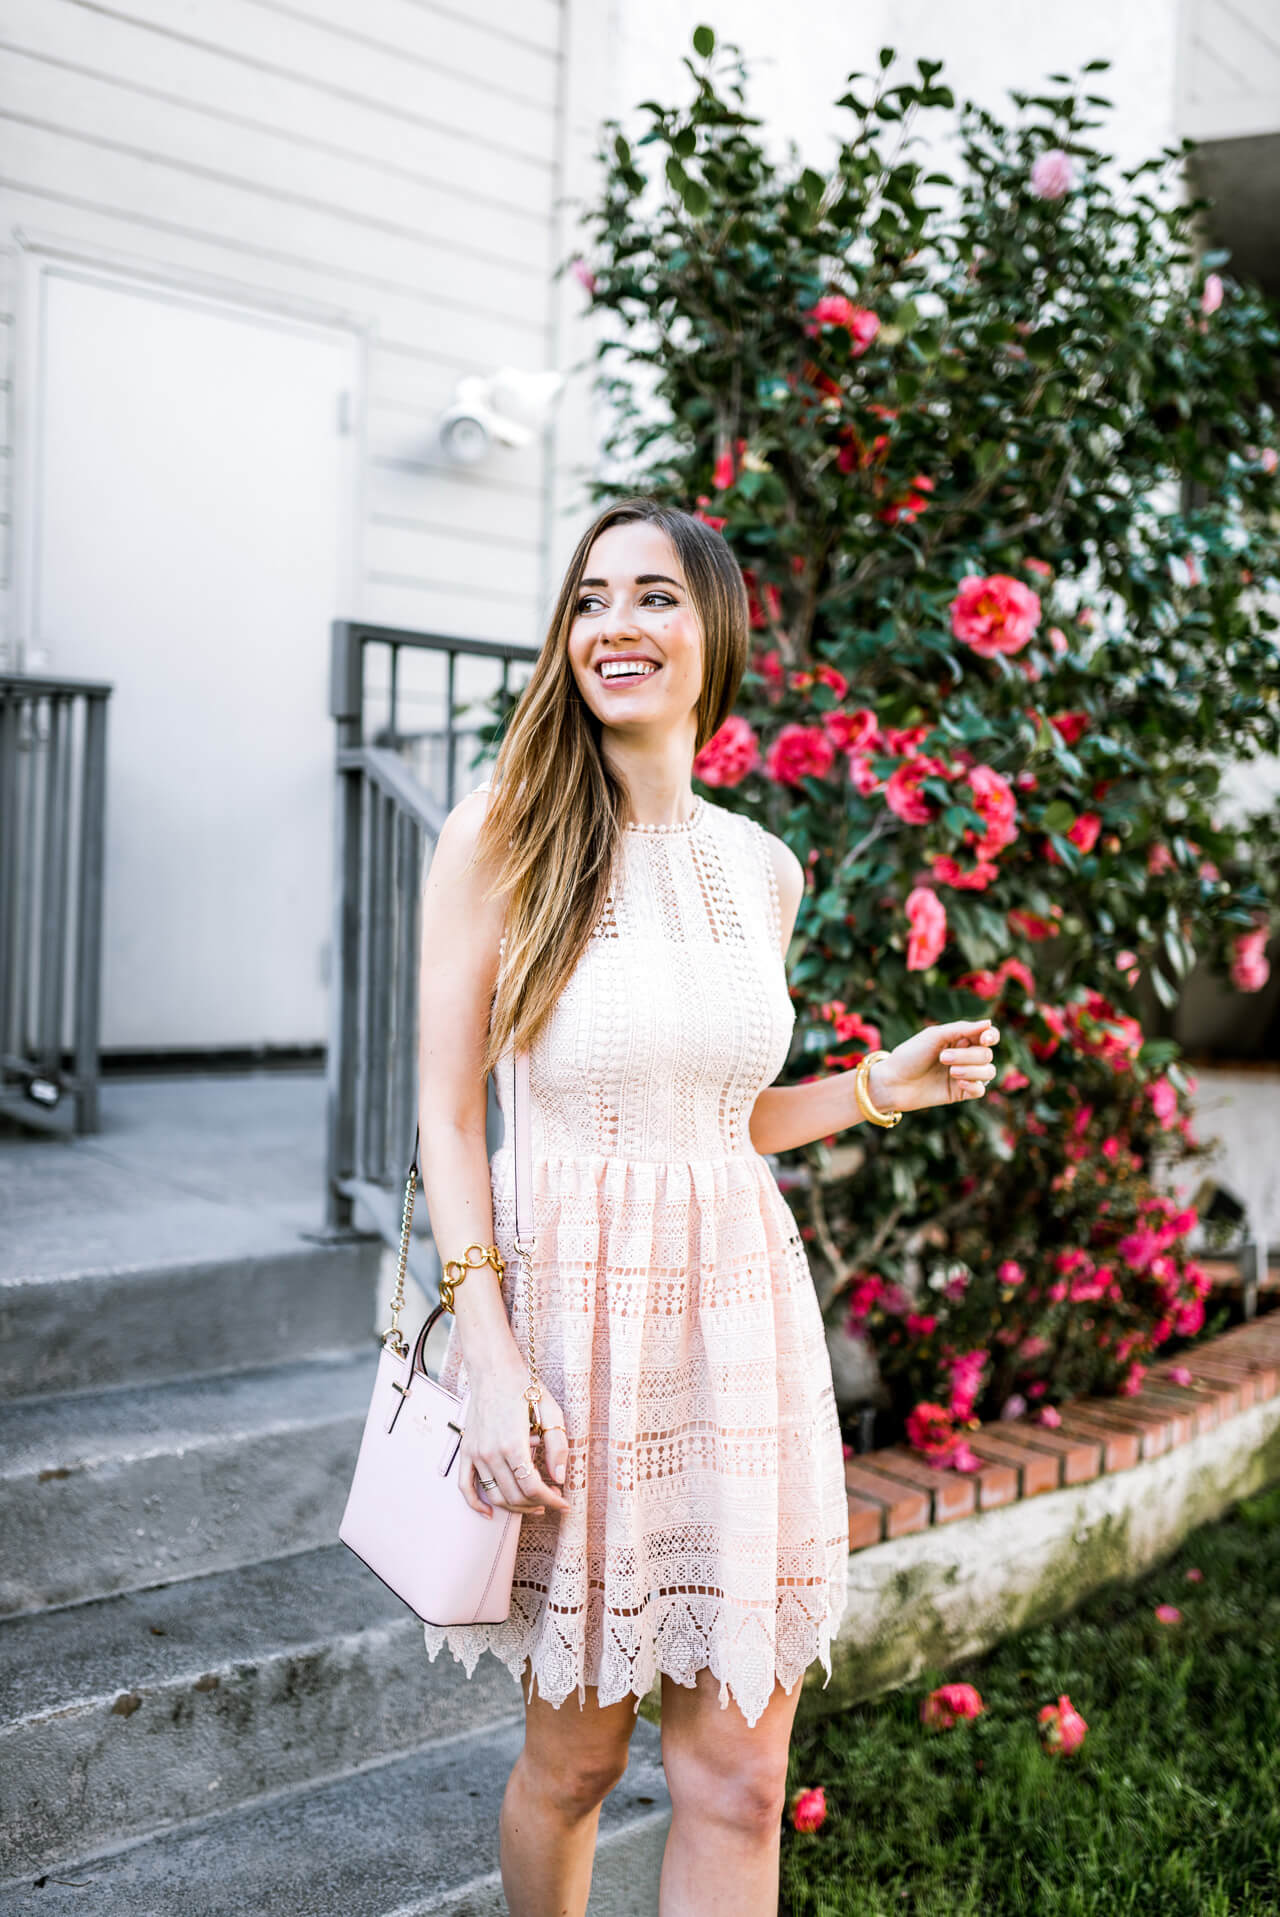 lace dress that's so perfect for spring!